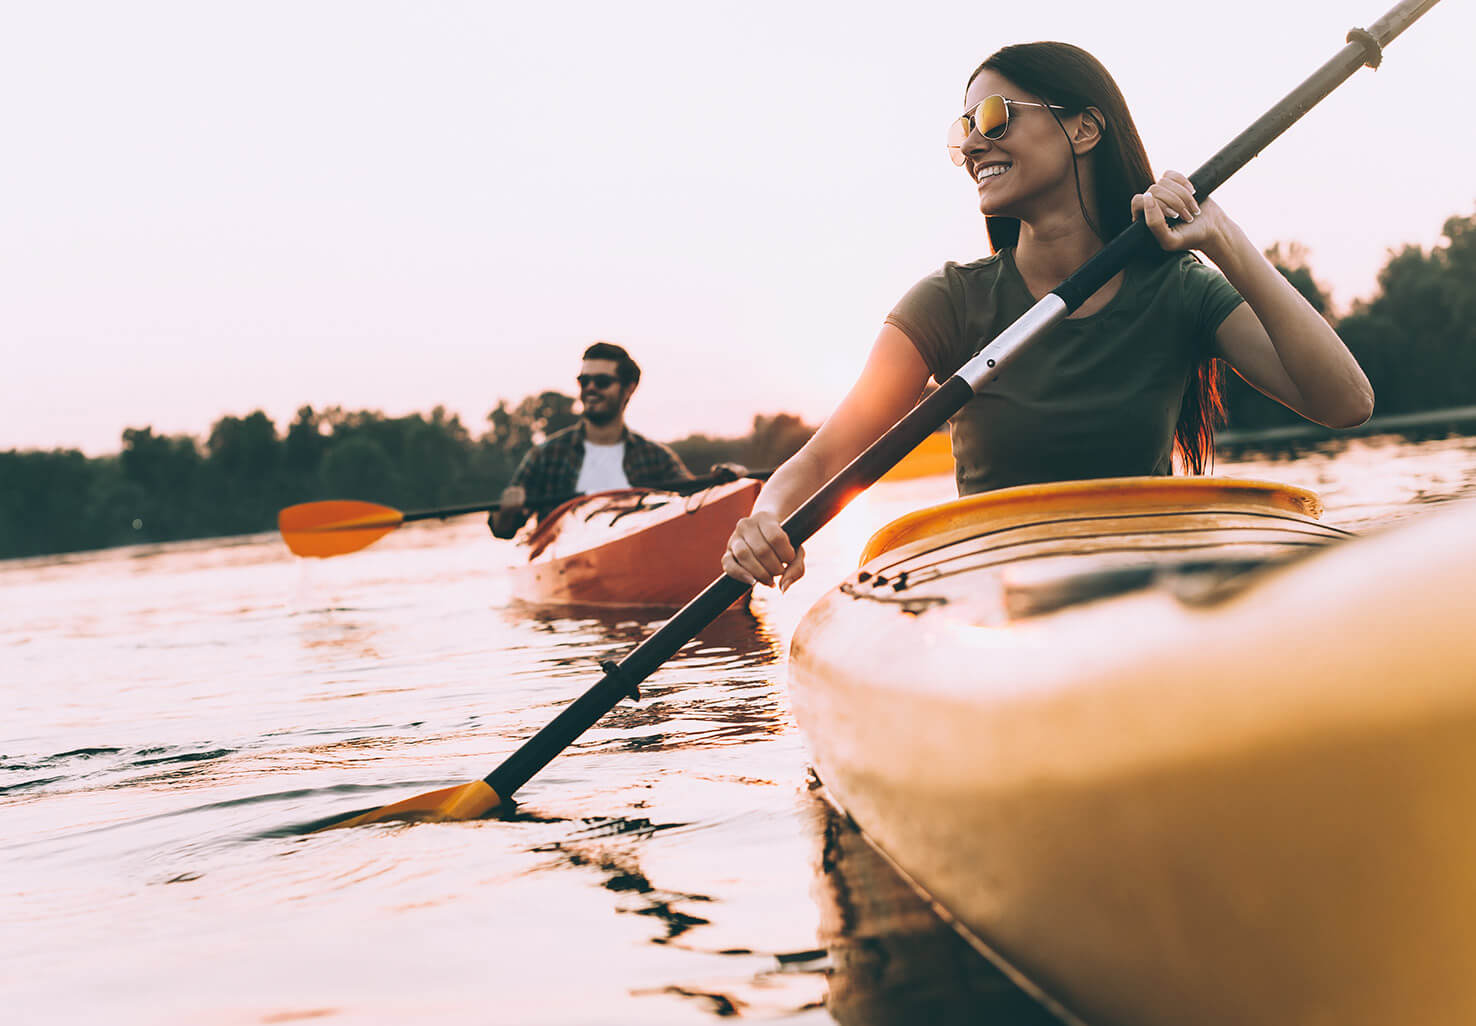 Couple kayaking on a river in Northern Virginia